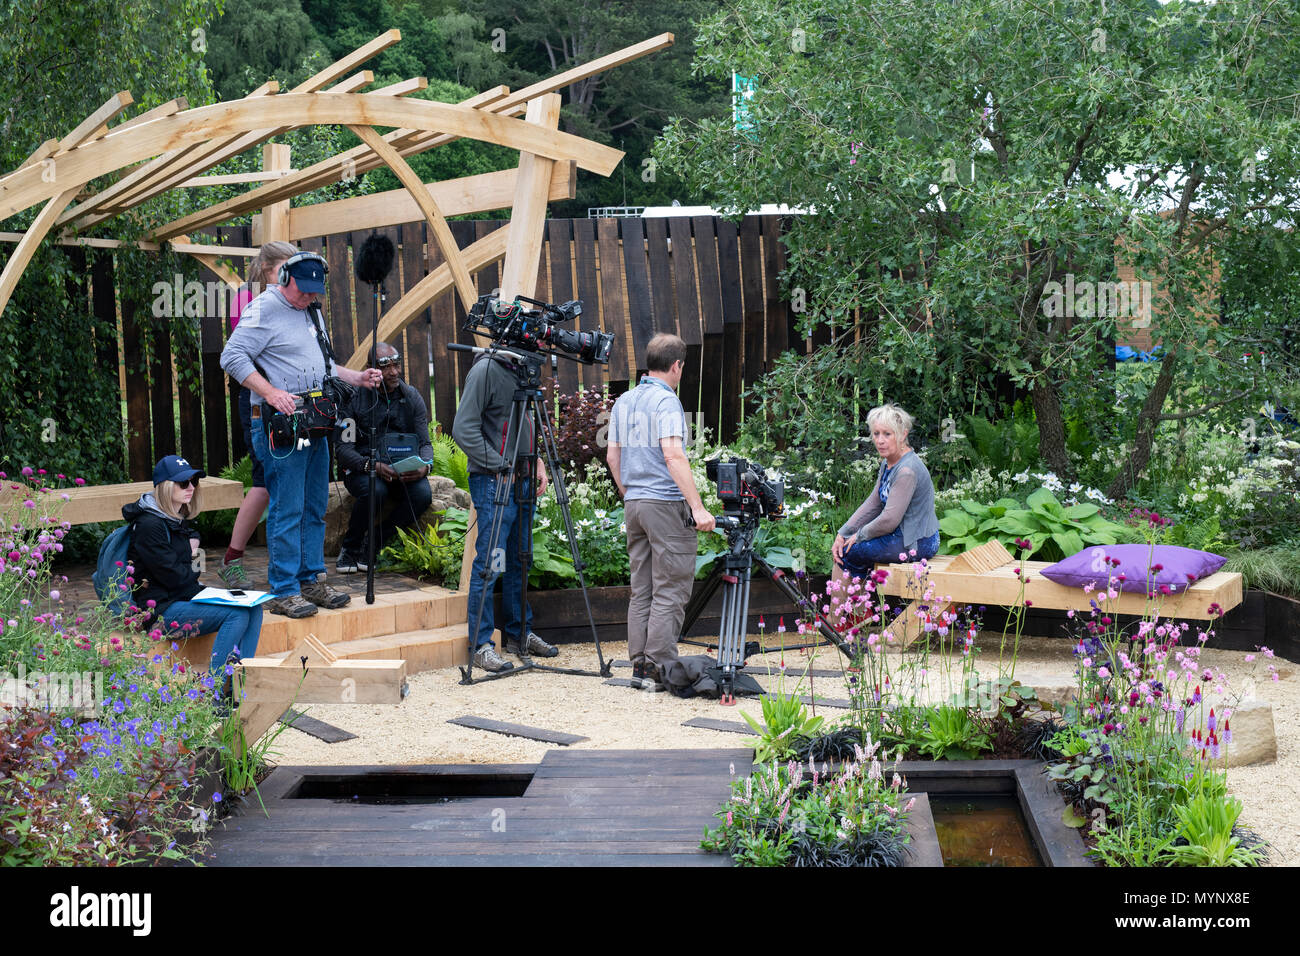 BBC Gardeners world film crew with Carol Klein in The Great Outdoors show garden at RHS Chatsworth flower show 2018. Chatsworth, Derbyshire, England - Stock Image